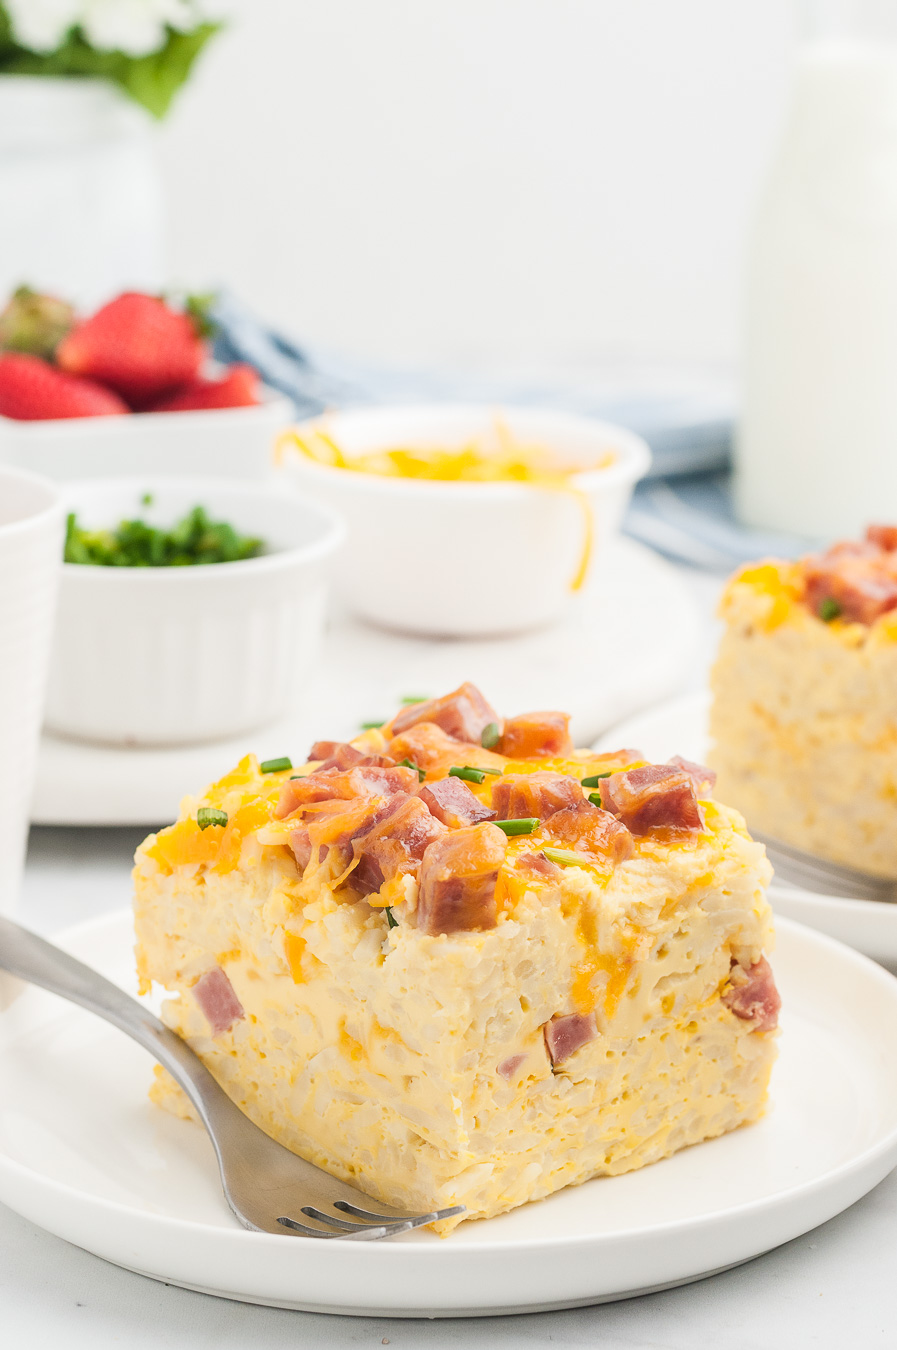 breakfast casserole serving on a plate alongside a fork. Strawberries, sliced green onions and cheddar cheese in individual bowls in the background.